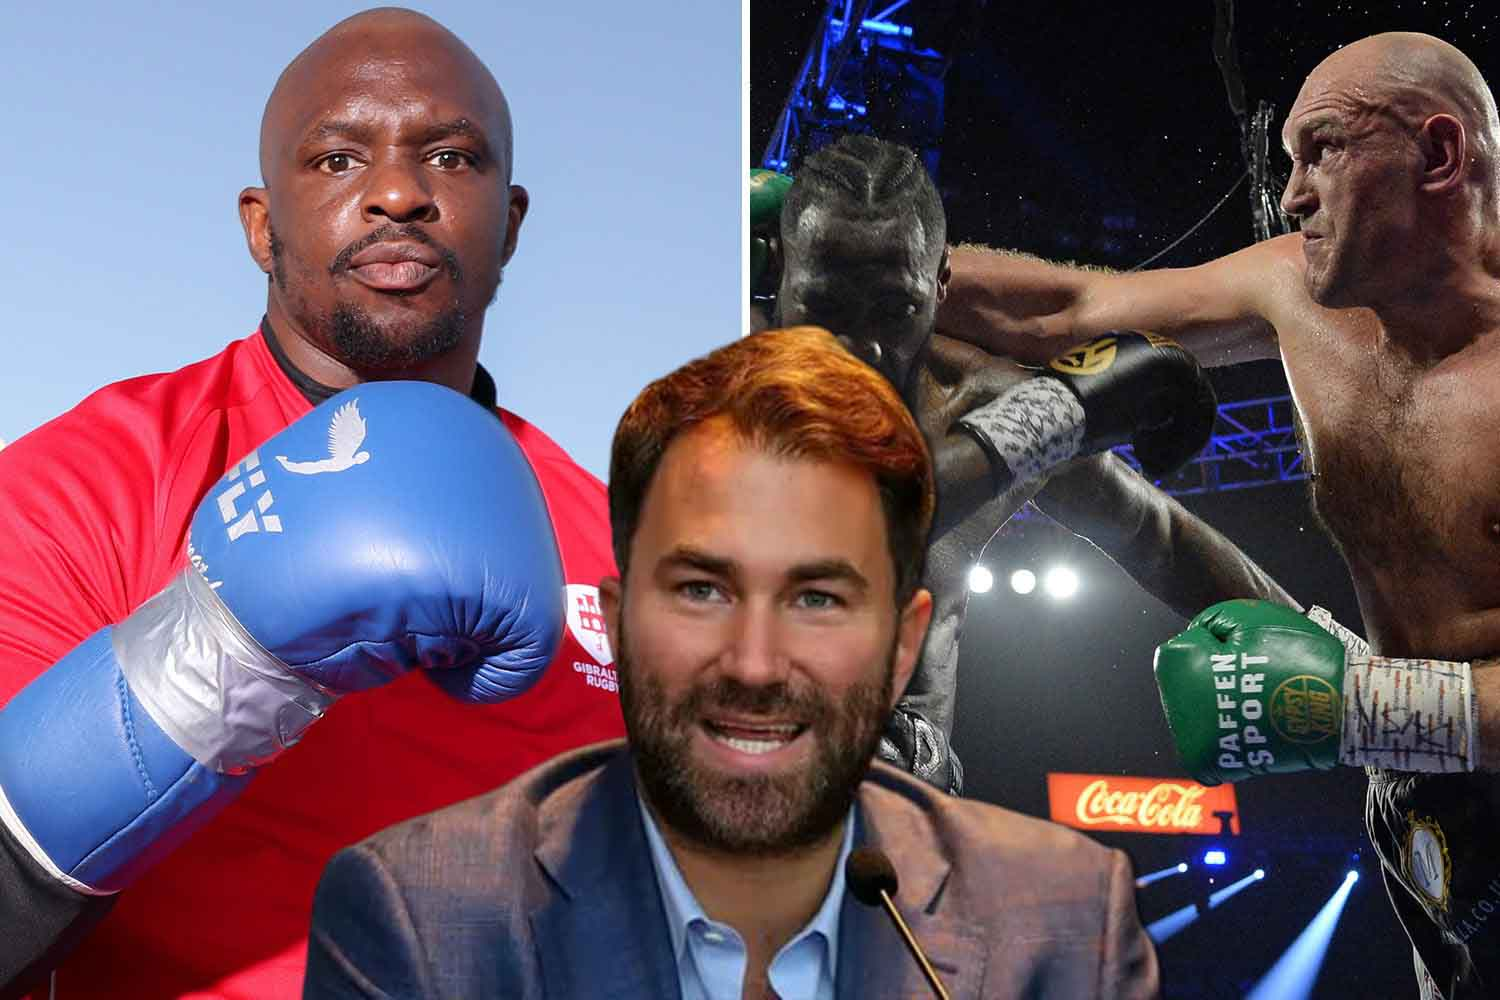 Dillian Whyte is ready to replace Tyson Fury in the fight with Deontay Wilder